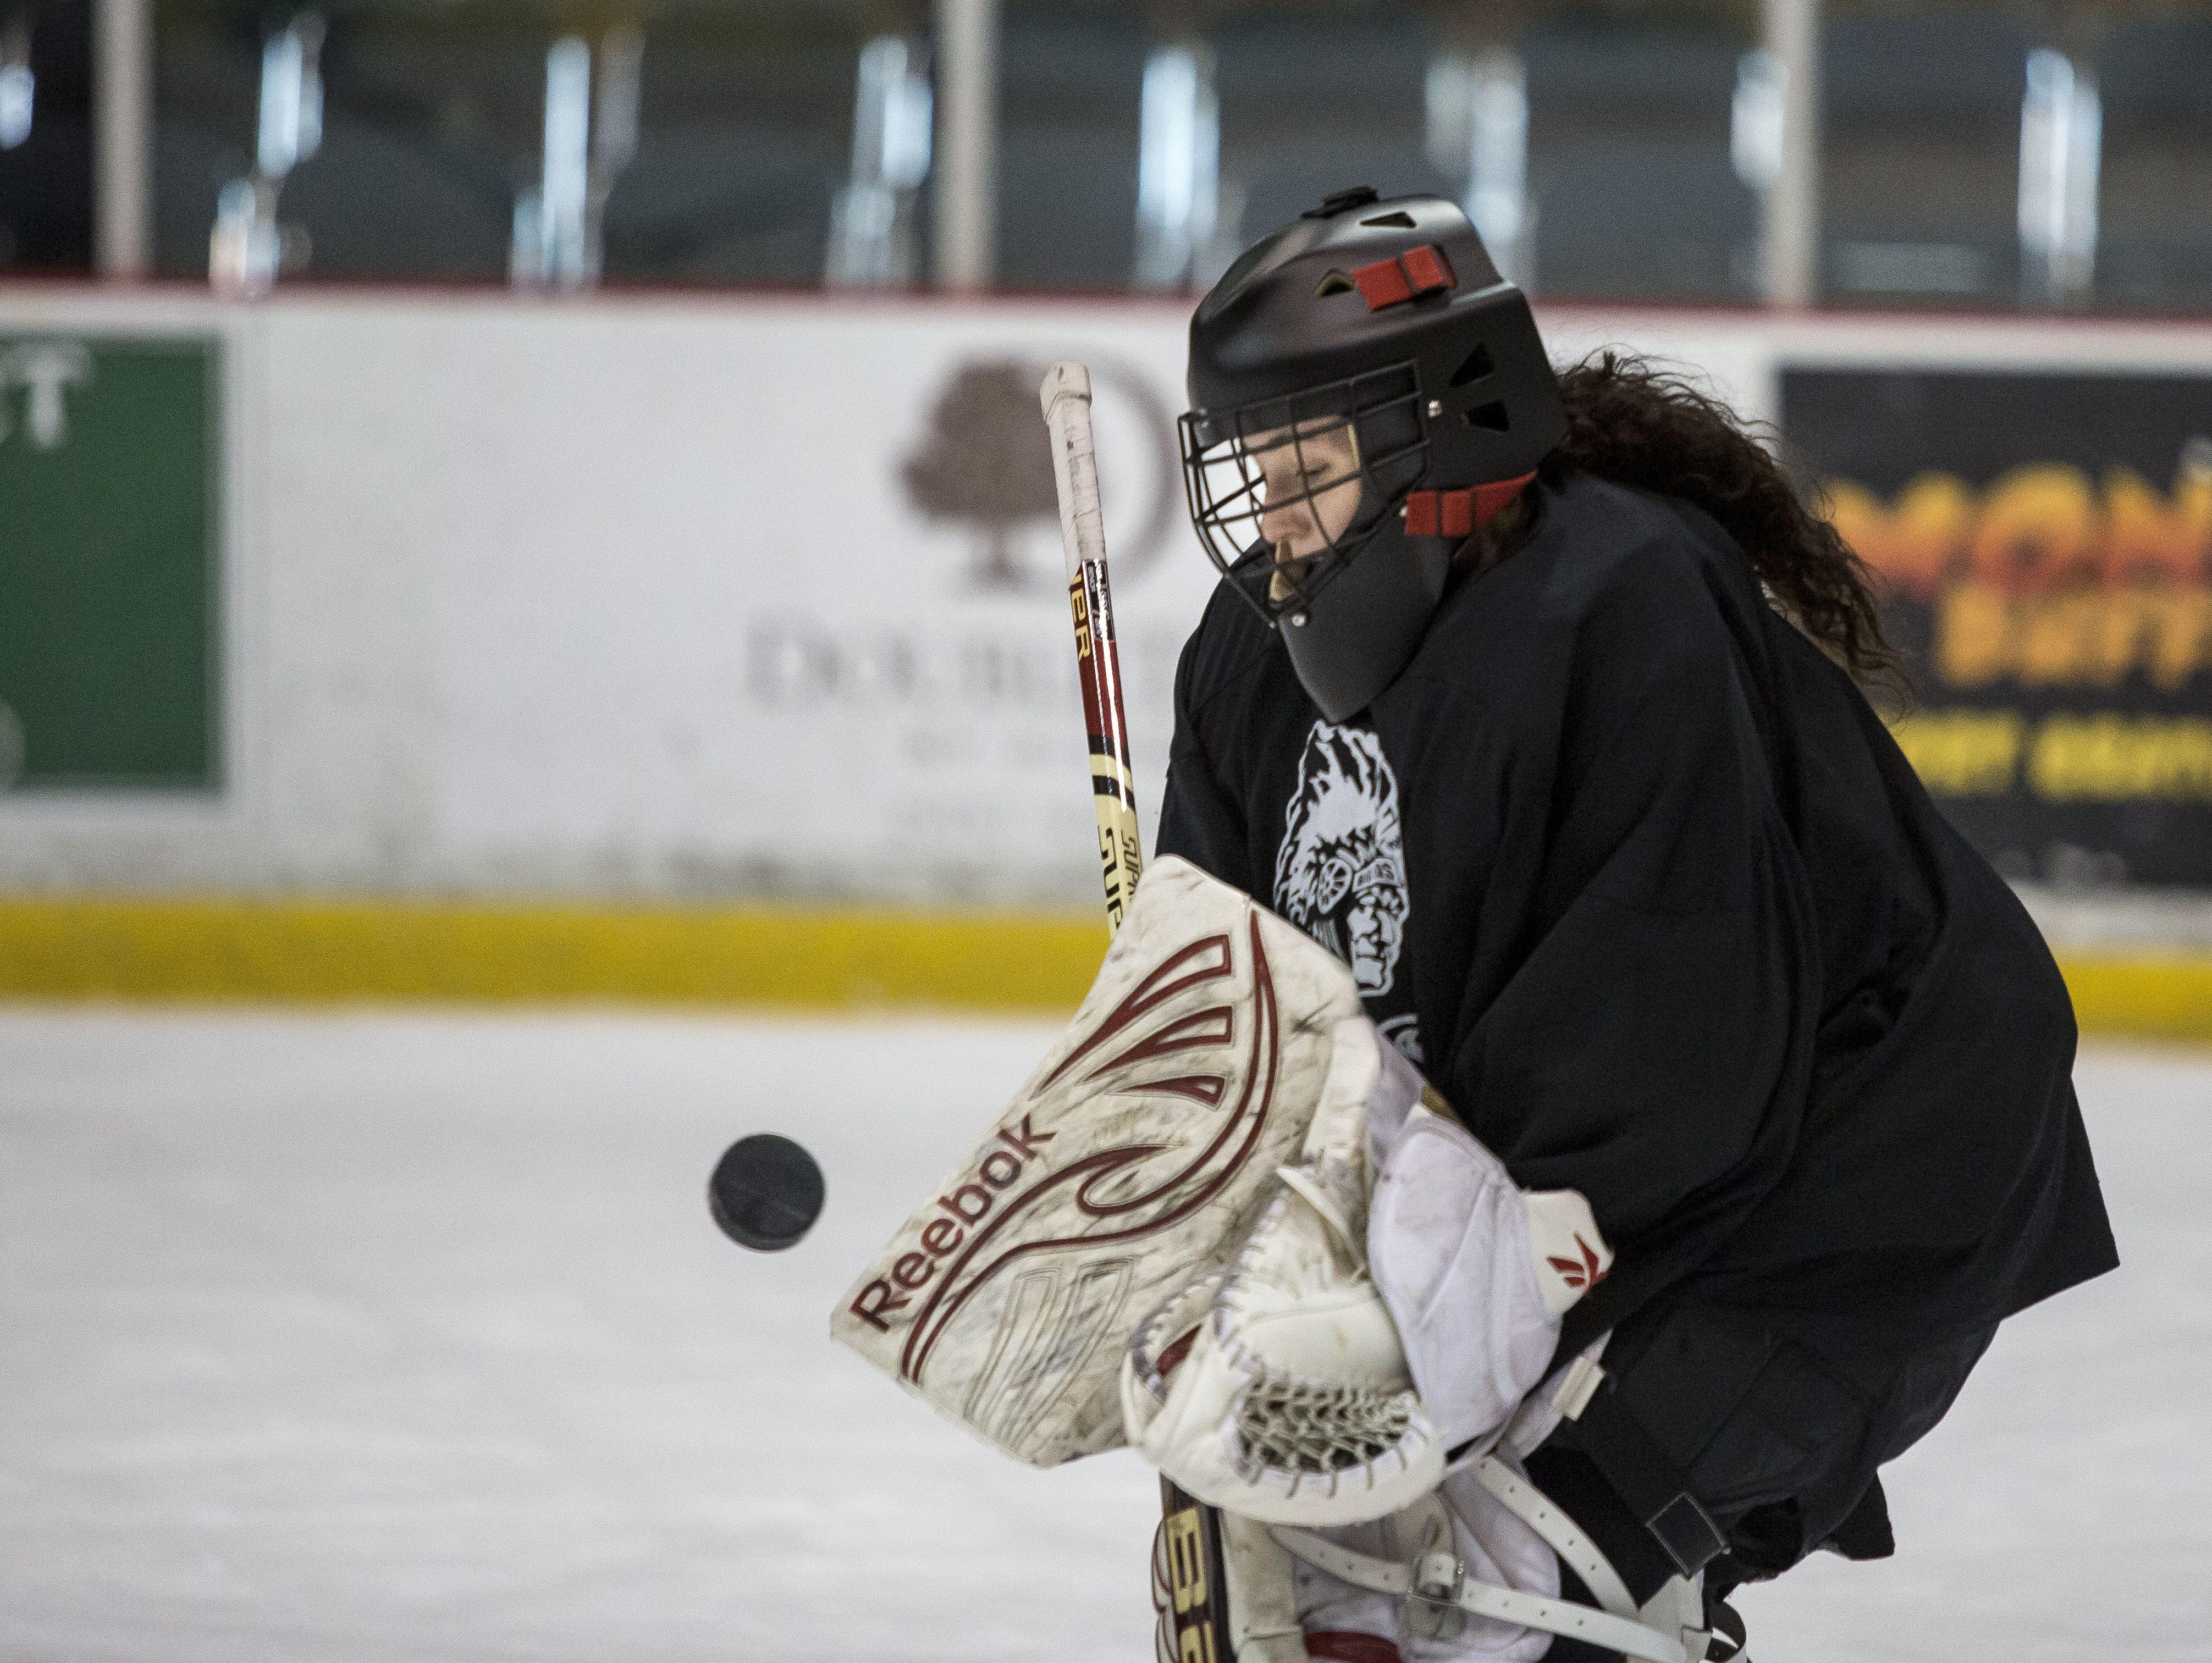 Port Huron goalie Ally Fetterly stops a shot on goal during a practice at McMorran Arena in Port Huron.